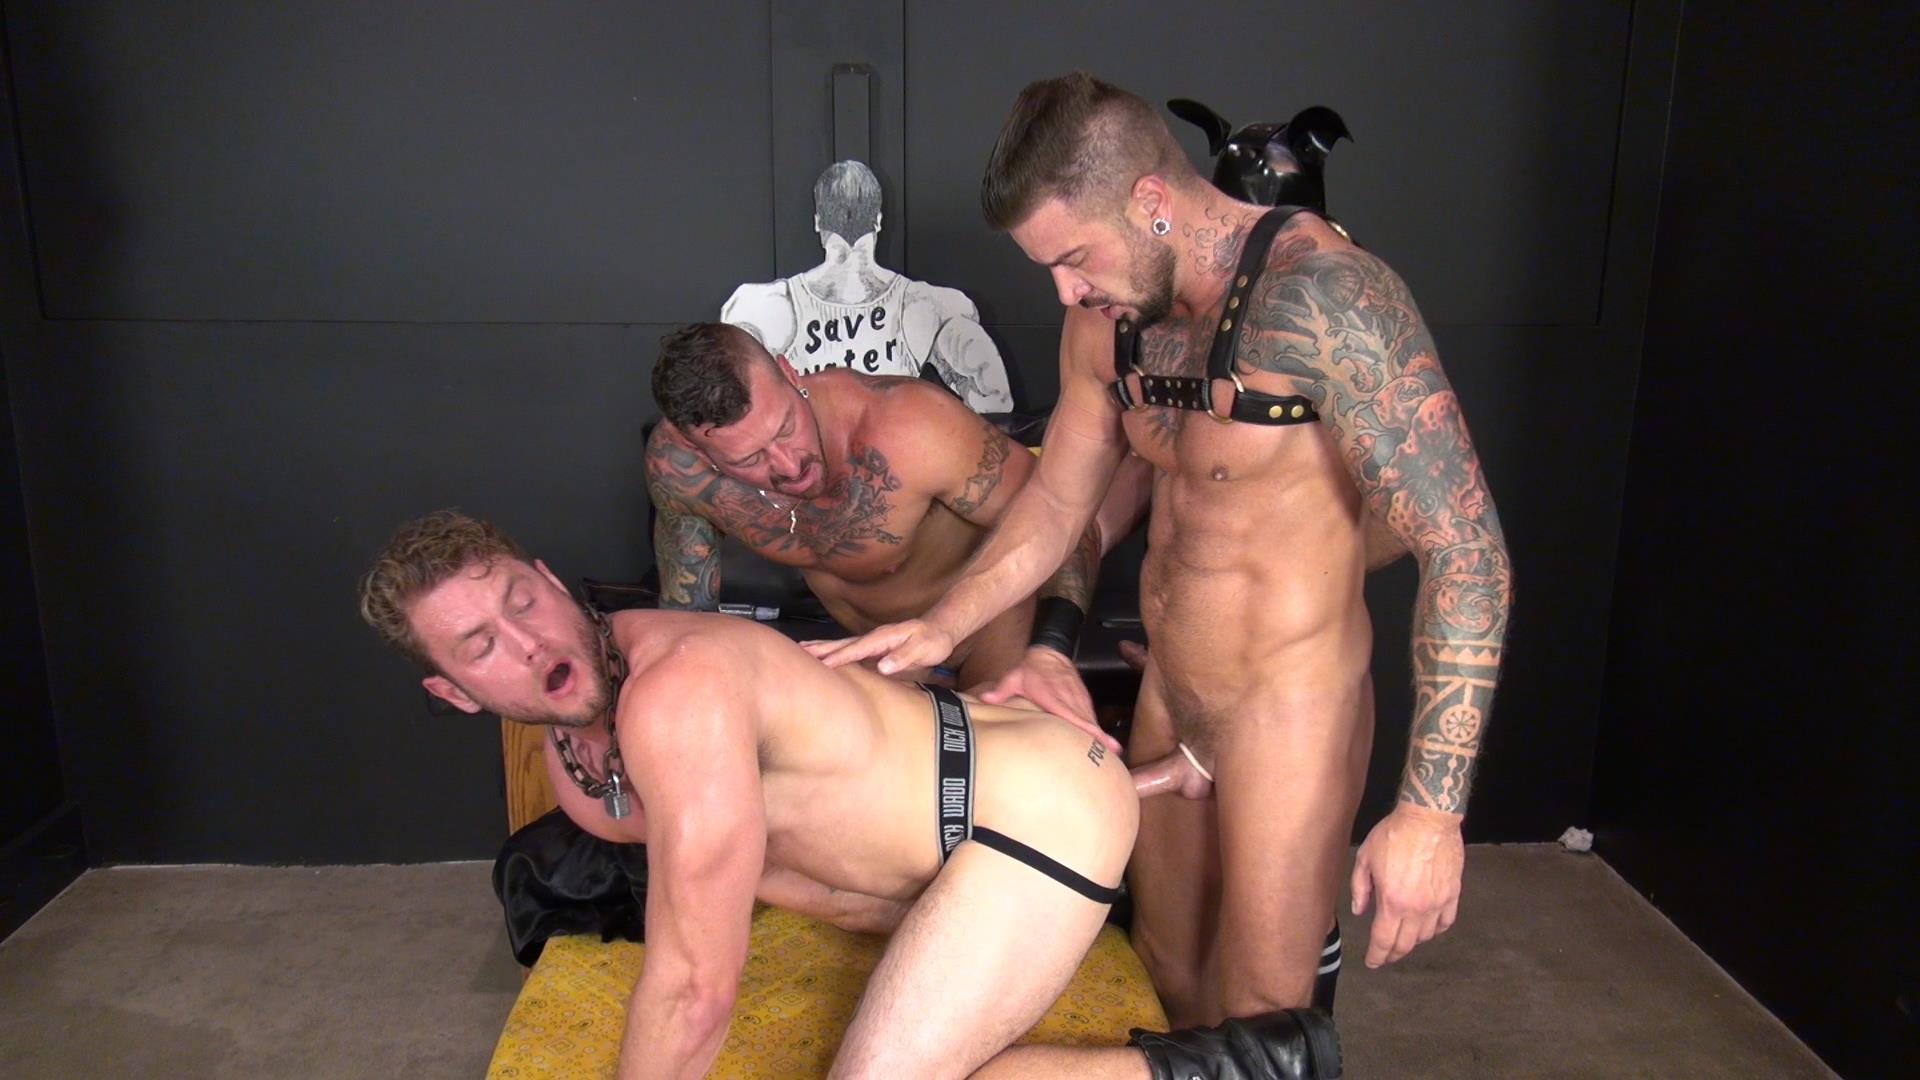 Raw and Rough Boy Fillmore Dolf Dietrich Damon Andros Hugh Hunter Ace Era Free Gay Porn 18 Bareback Fuck And Piss Party At An Underground Sex Club